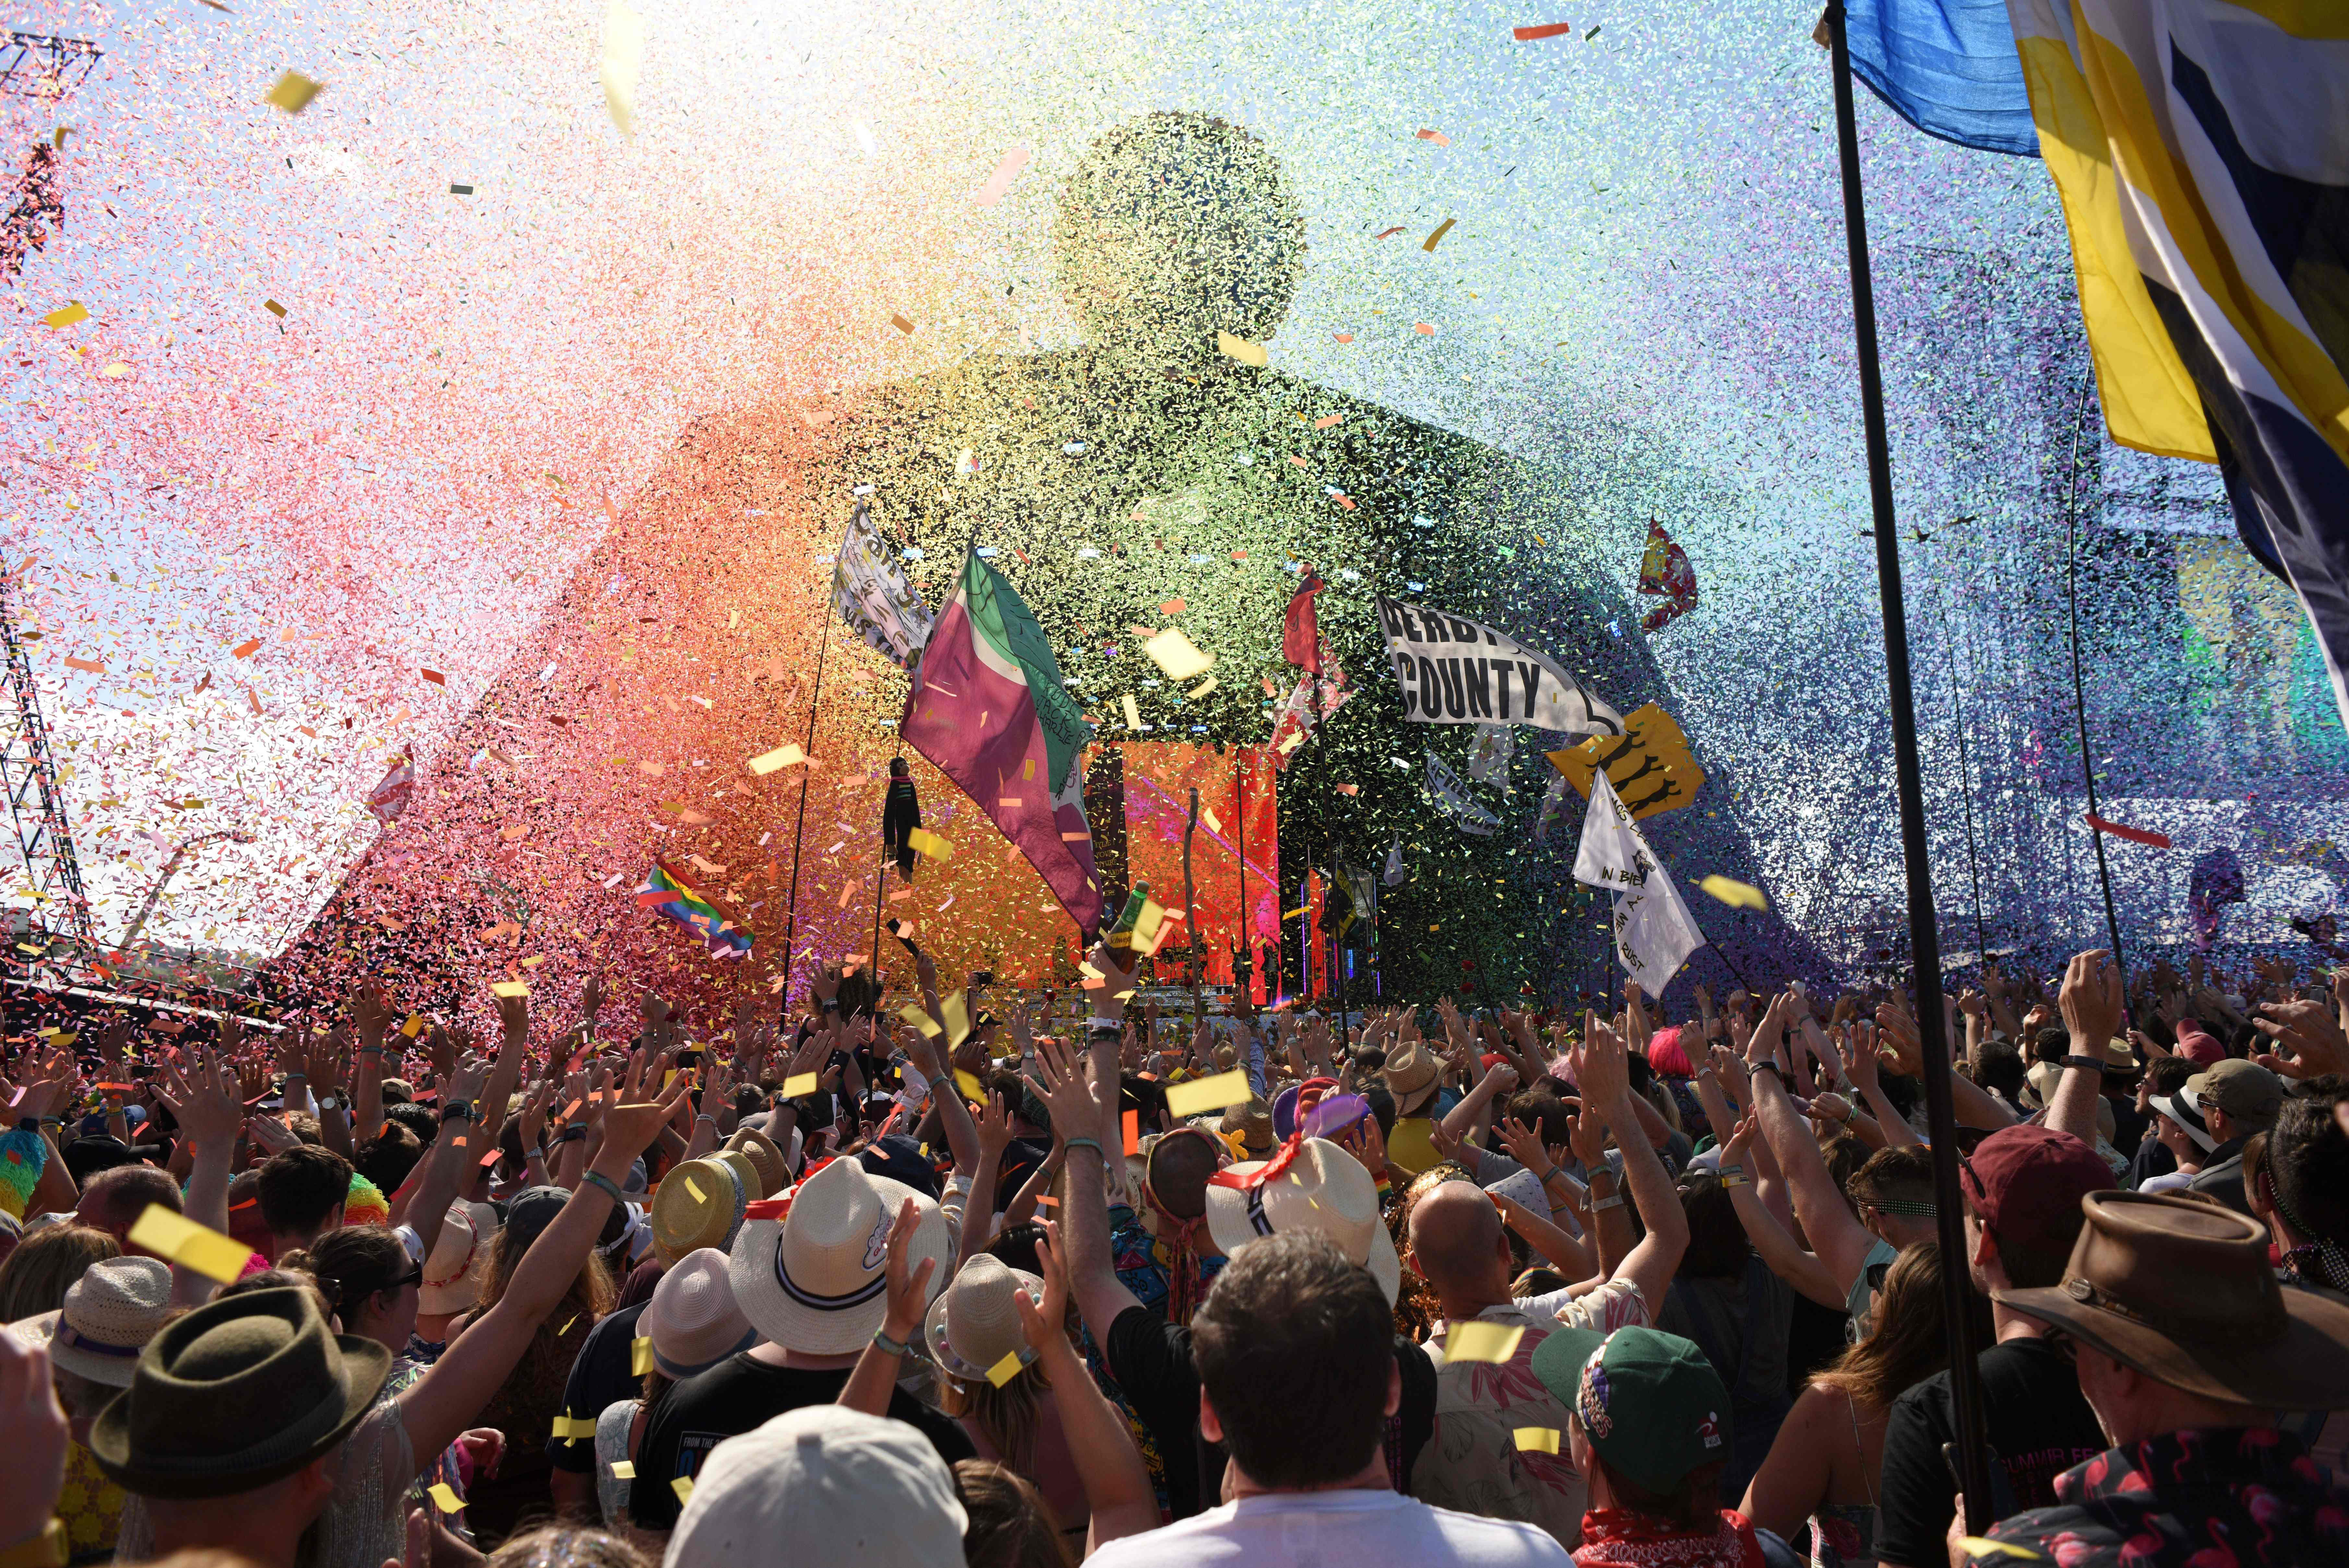 People cheer as singer Kylie prepares to perform at the Glastonbury Festival in Pilton, England, on June 30, 2019.